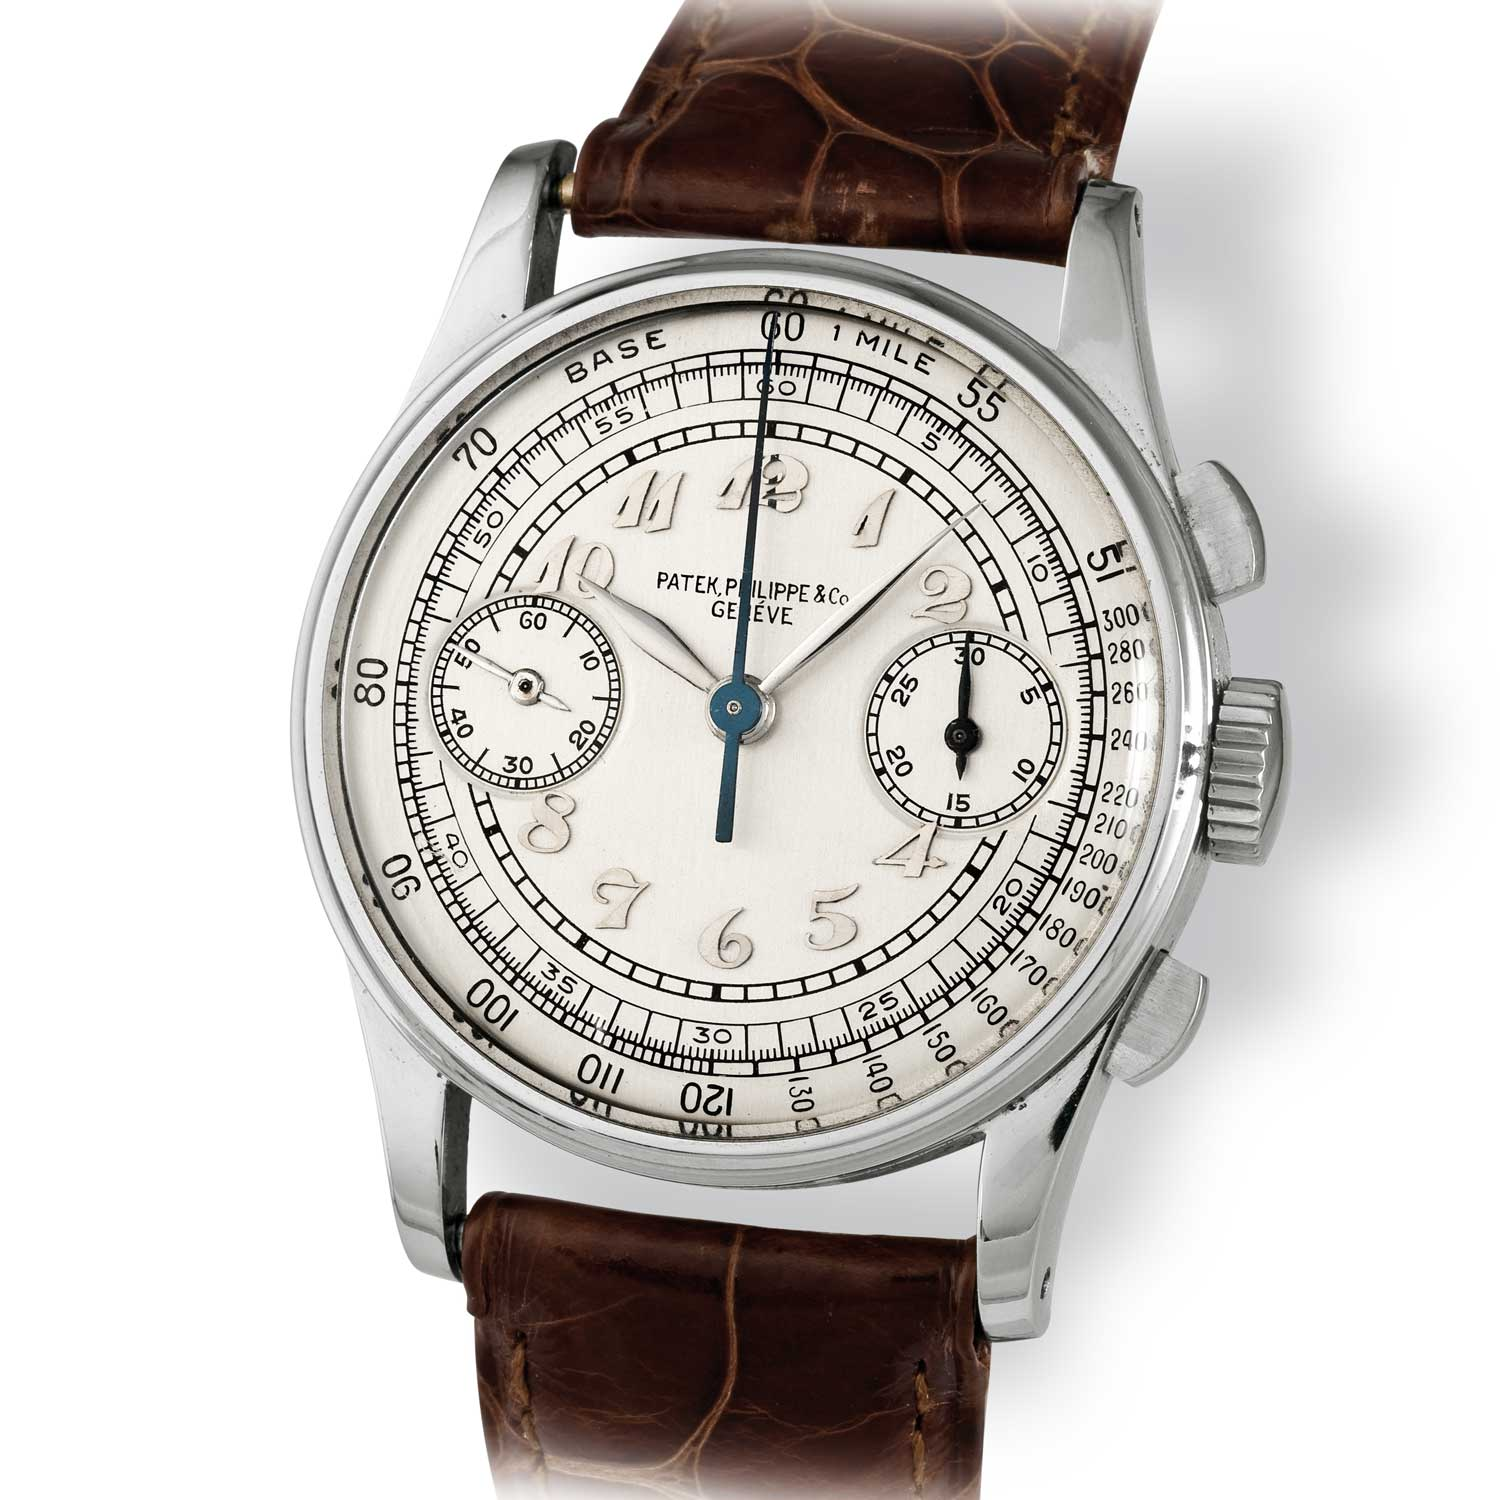 Patek Philippe ref. 130 steel chronograph with Breguet numerals (Image: John Goldberger)